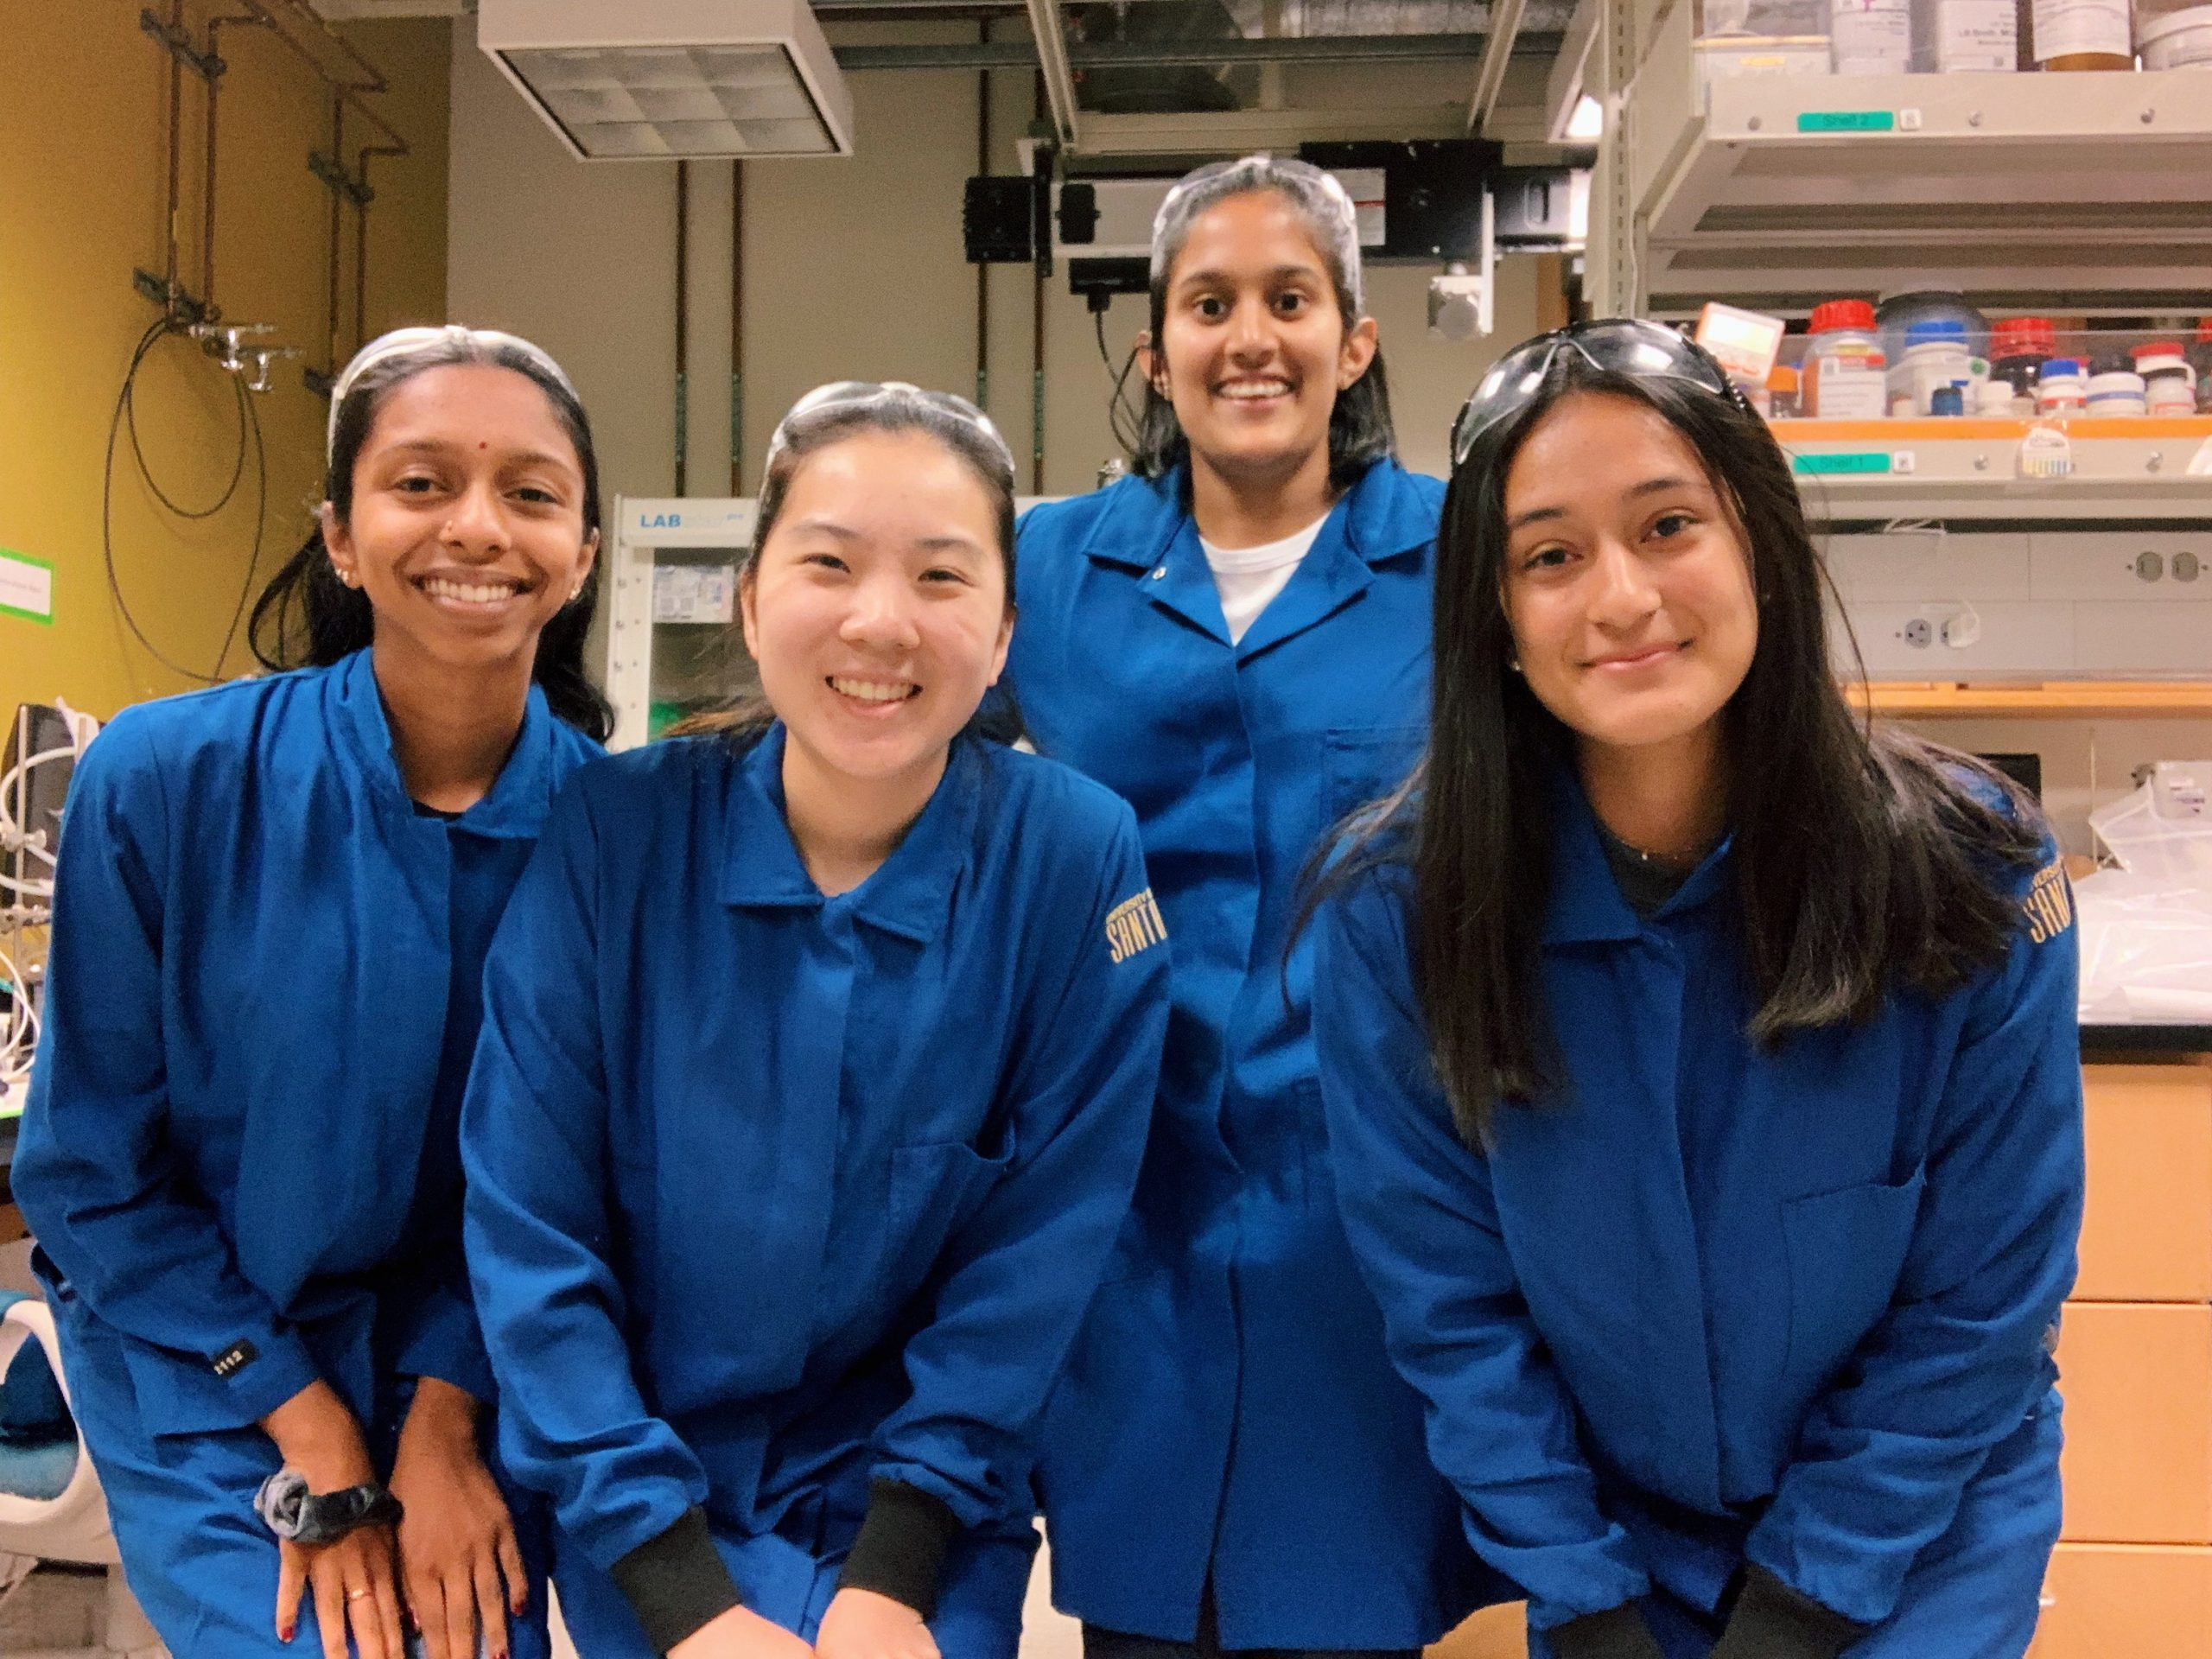 Science Internship Program announces record breaking application numbers, more scholarship opportunities